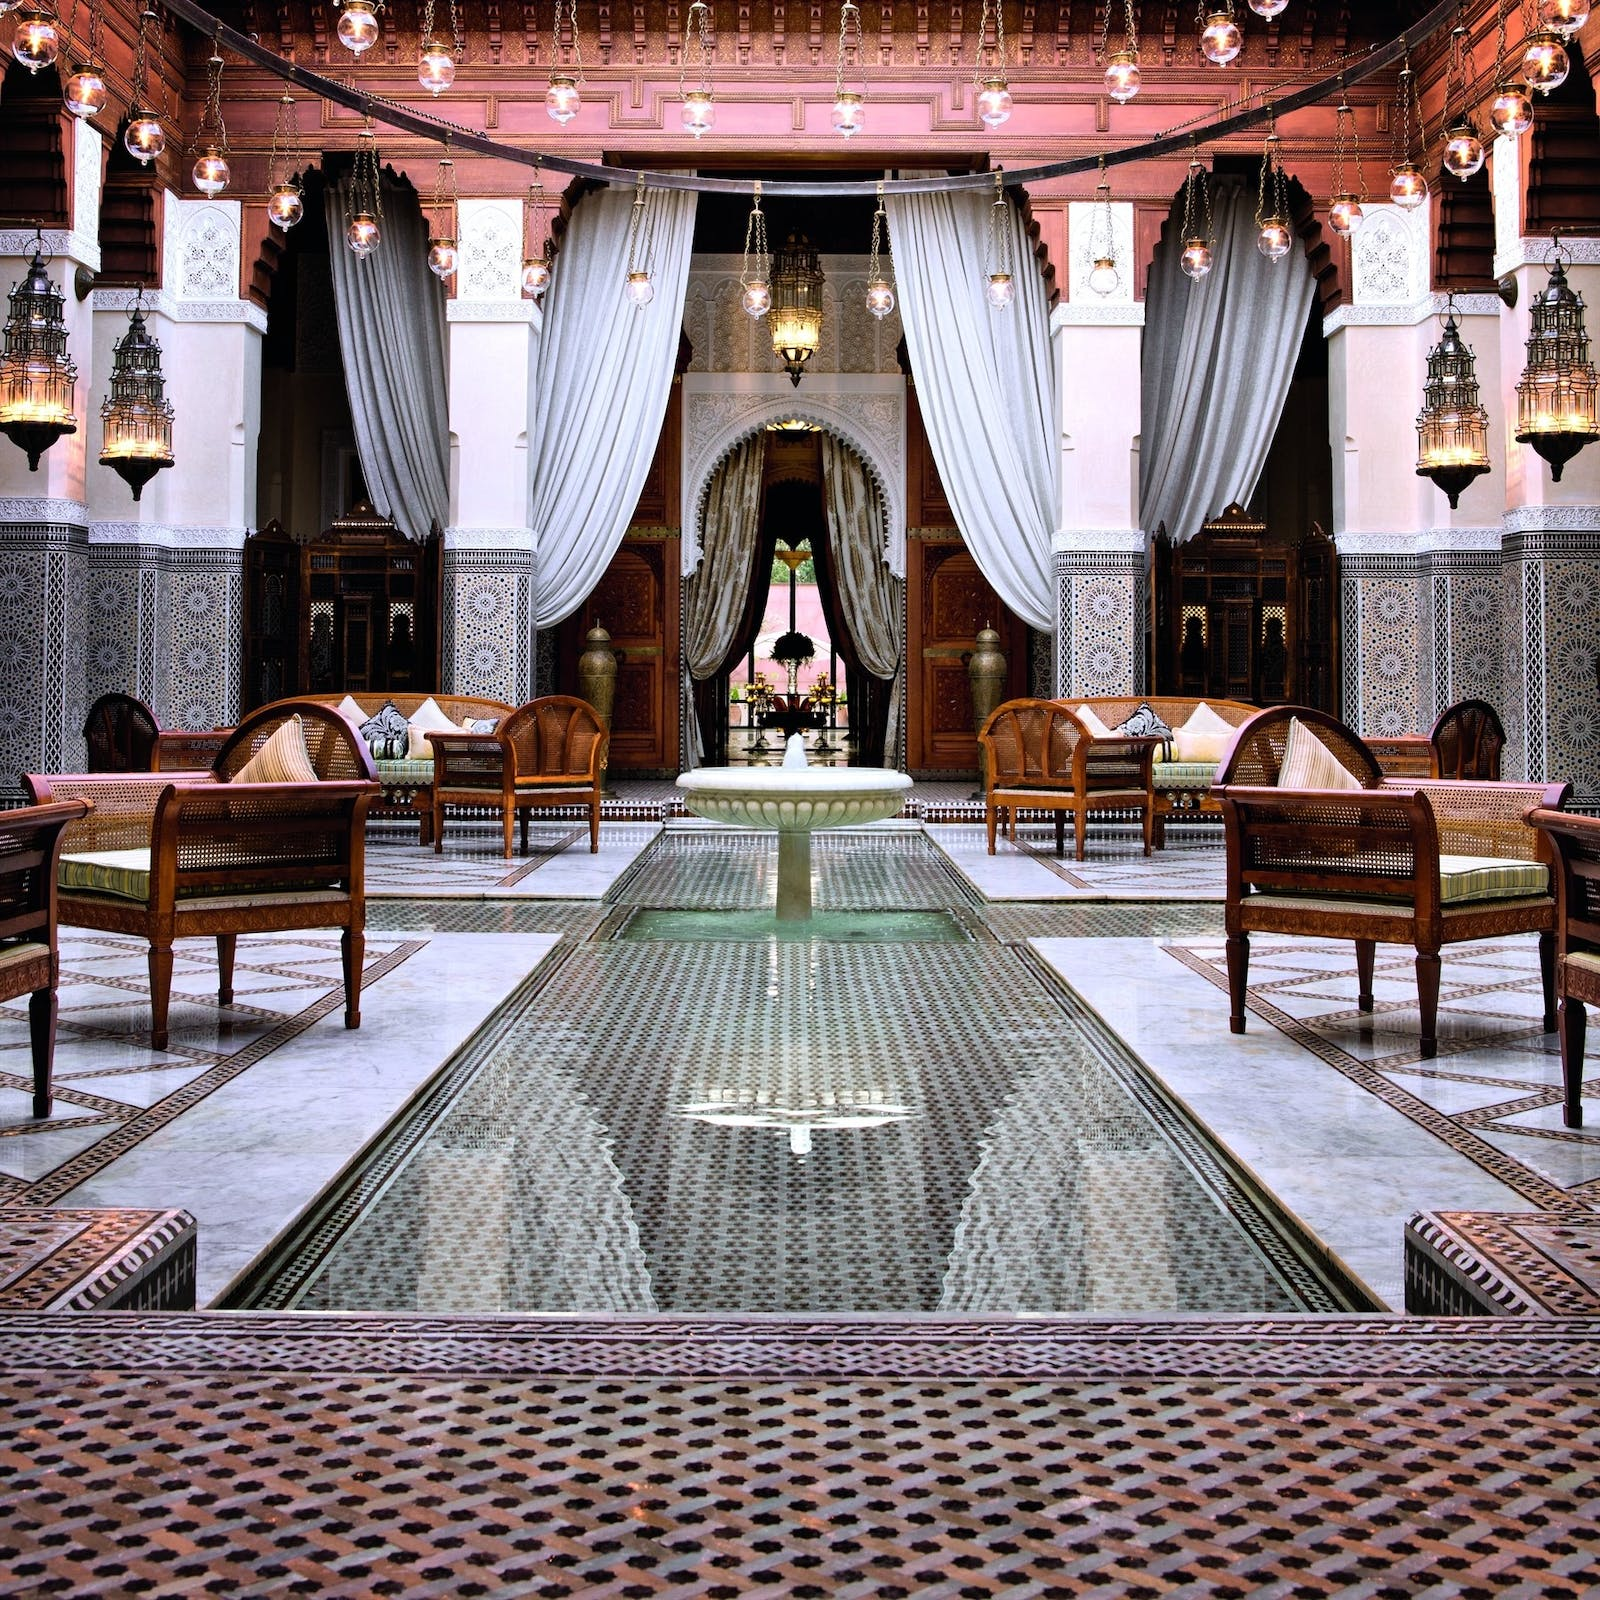 Moroccan interiors at Royal Mansour, Marrakech